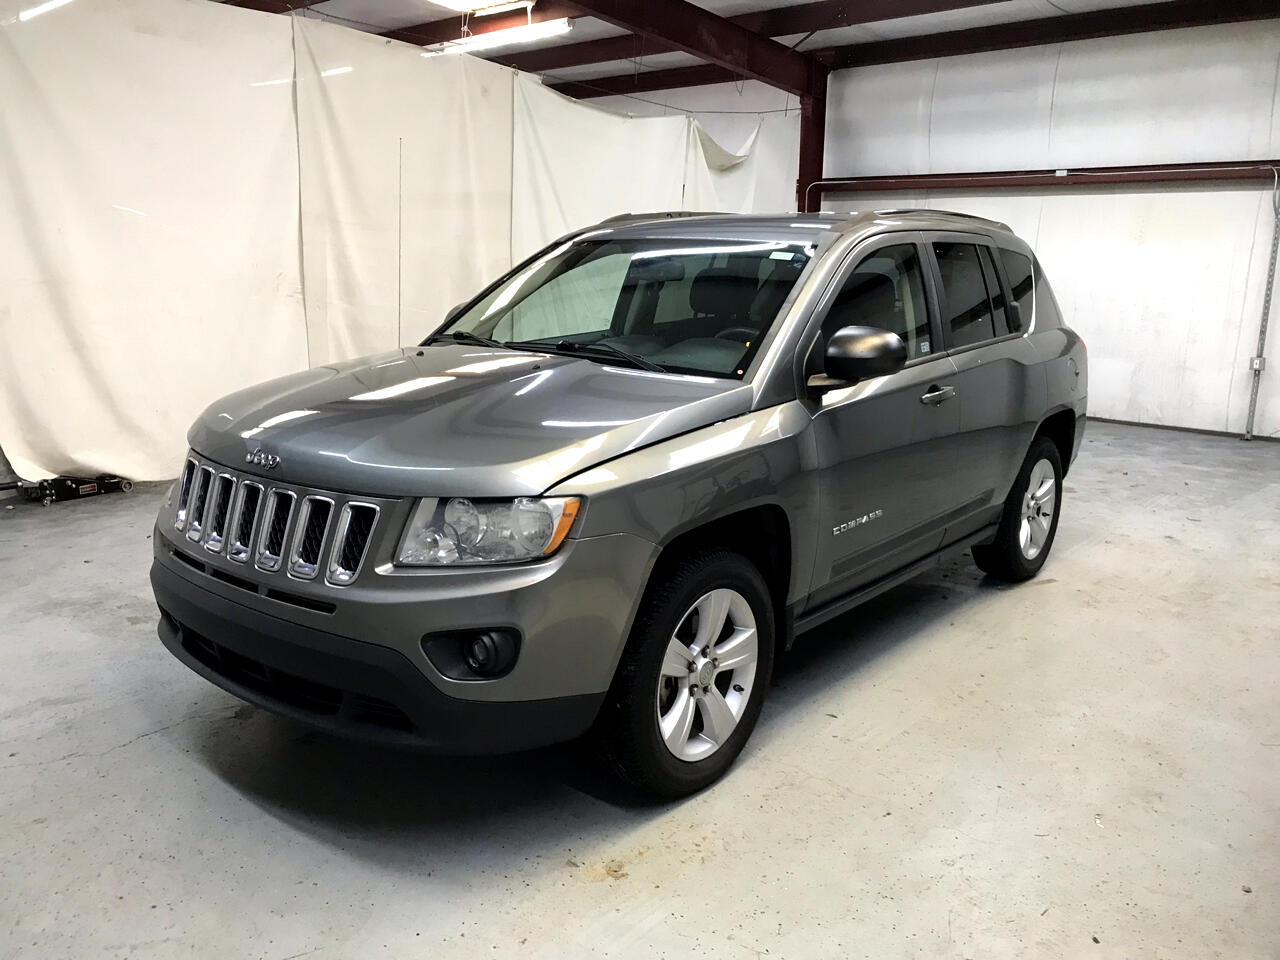 Jeep Compass FWD 4dr Latitude 2012